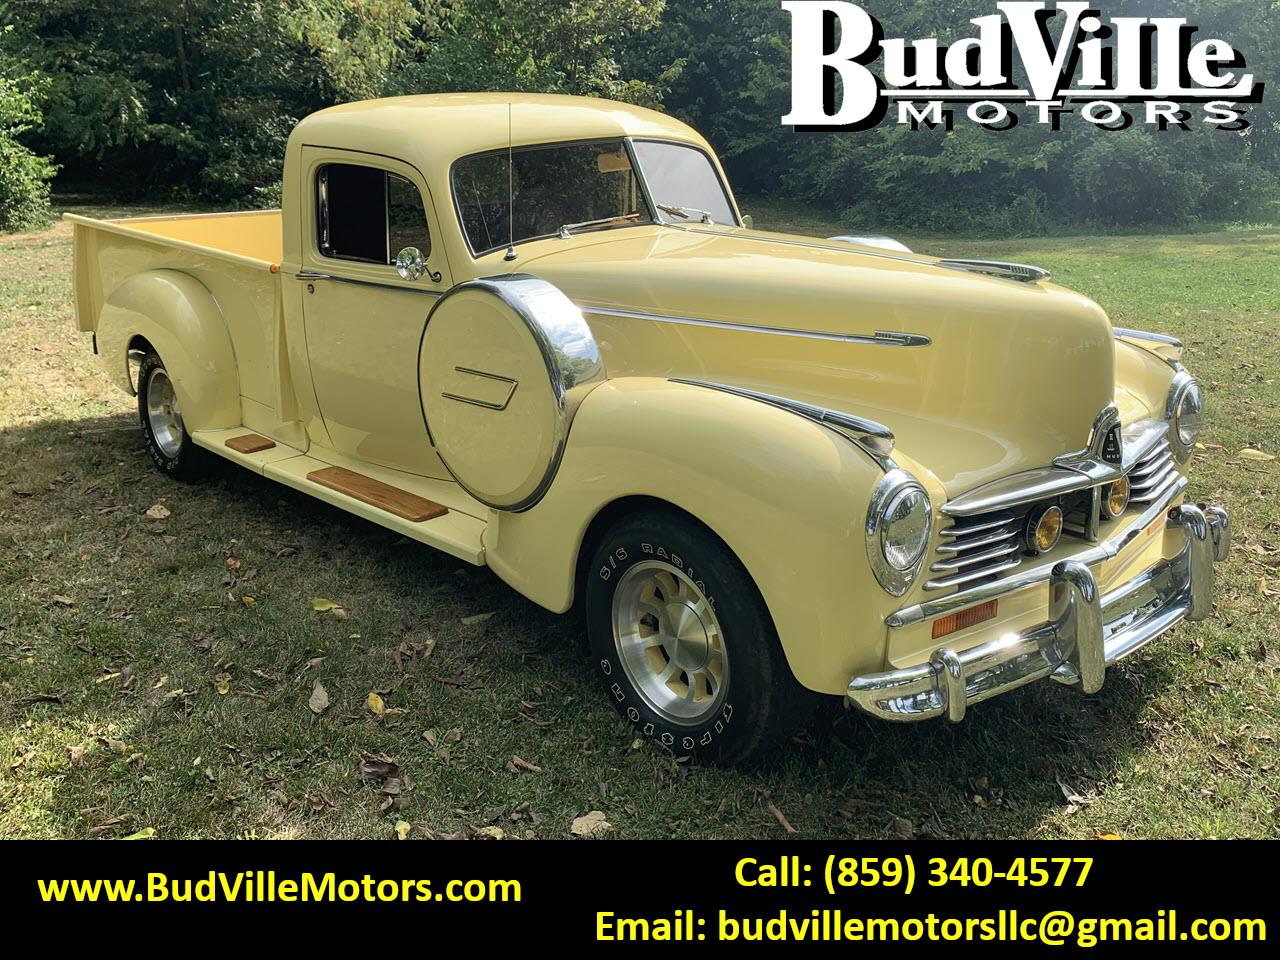 For Sale: 1946 Hudson Super 6 in Paris, Kentucky